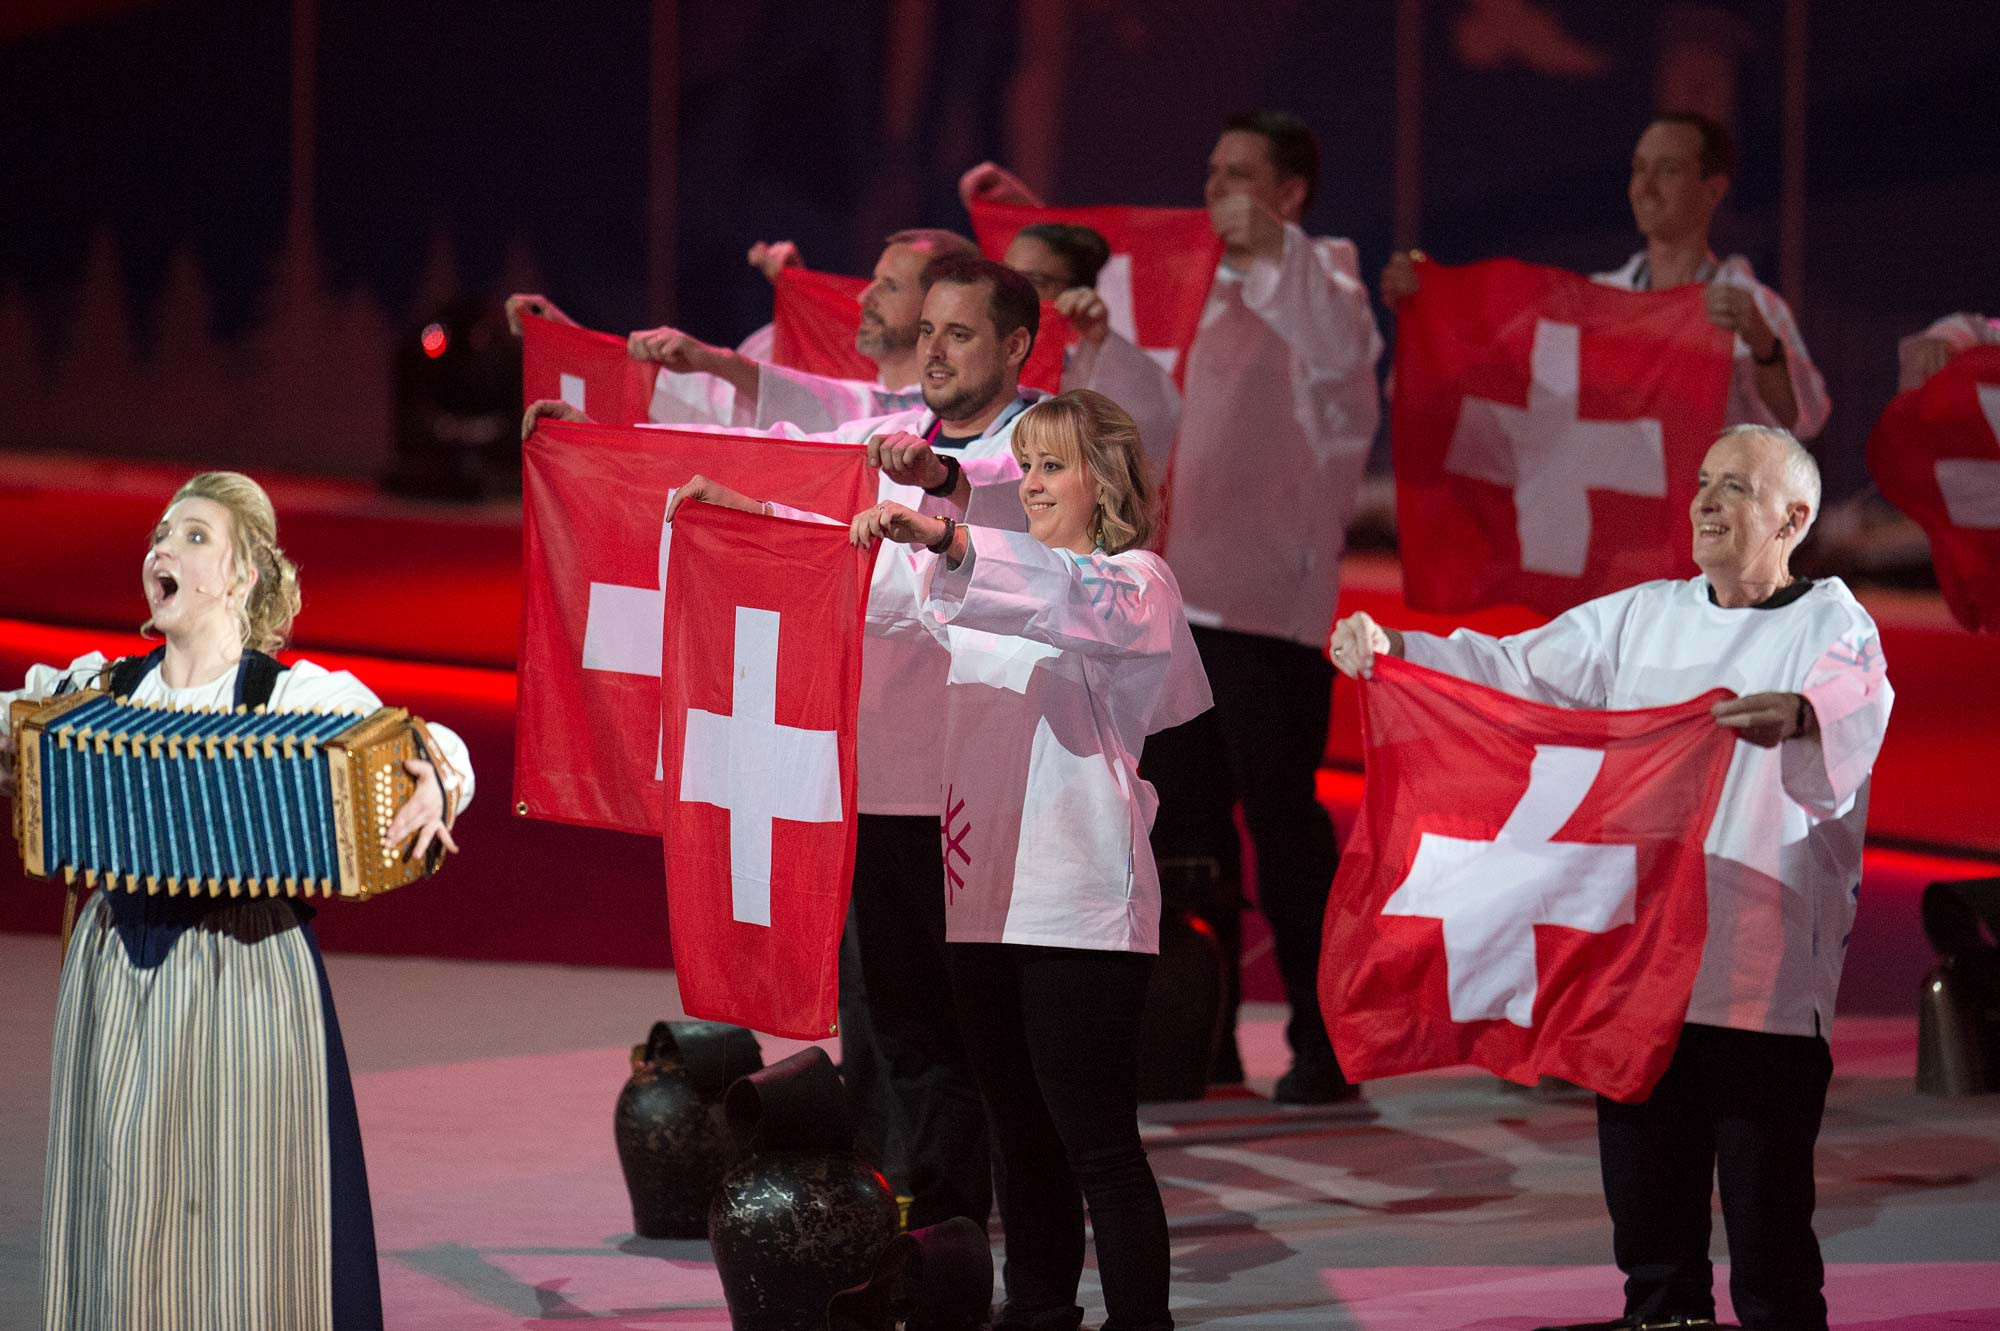 Lausanne 2020 organisers sharing expertise with counterparts at Lucerne 2021